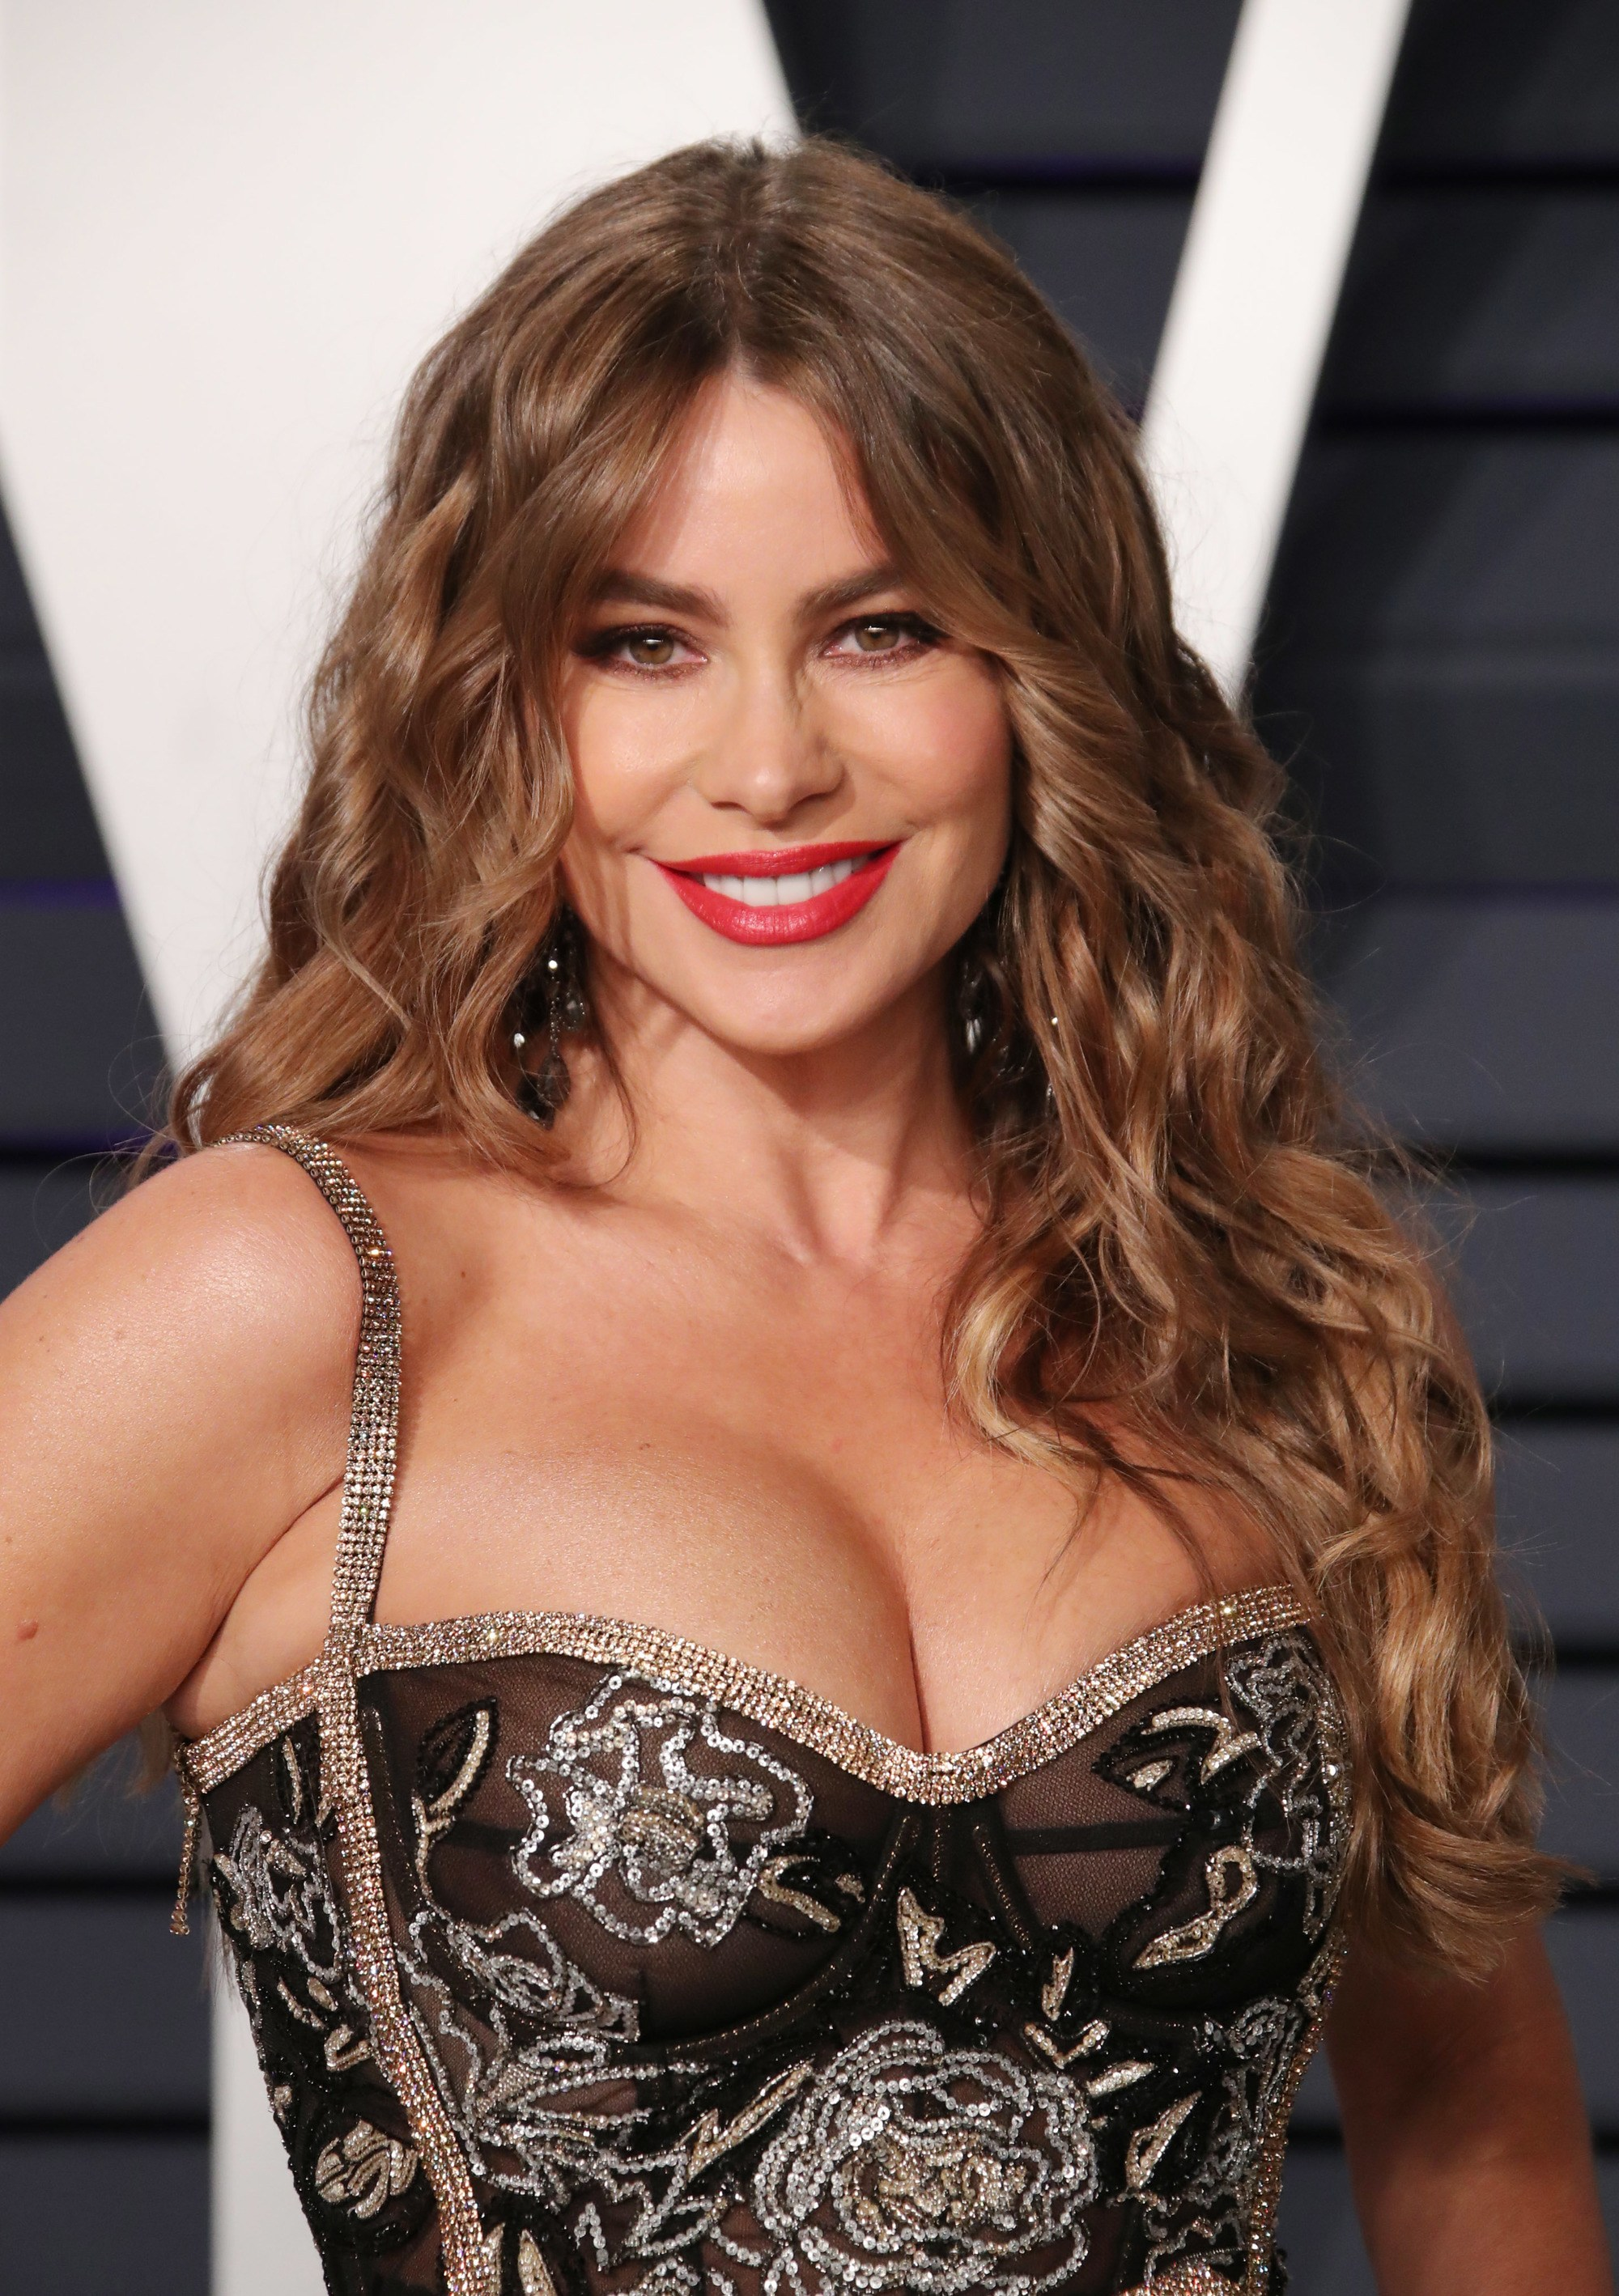 Sofia Vergara with long dulce de leche caramel hair styled into loose curls on the red carpet